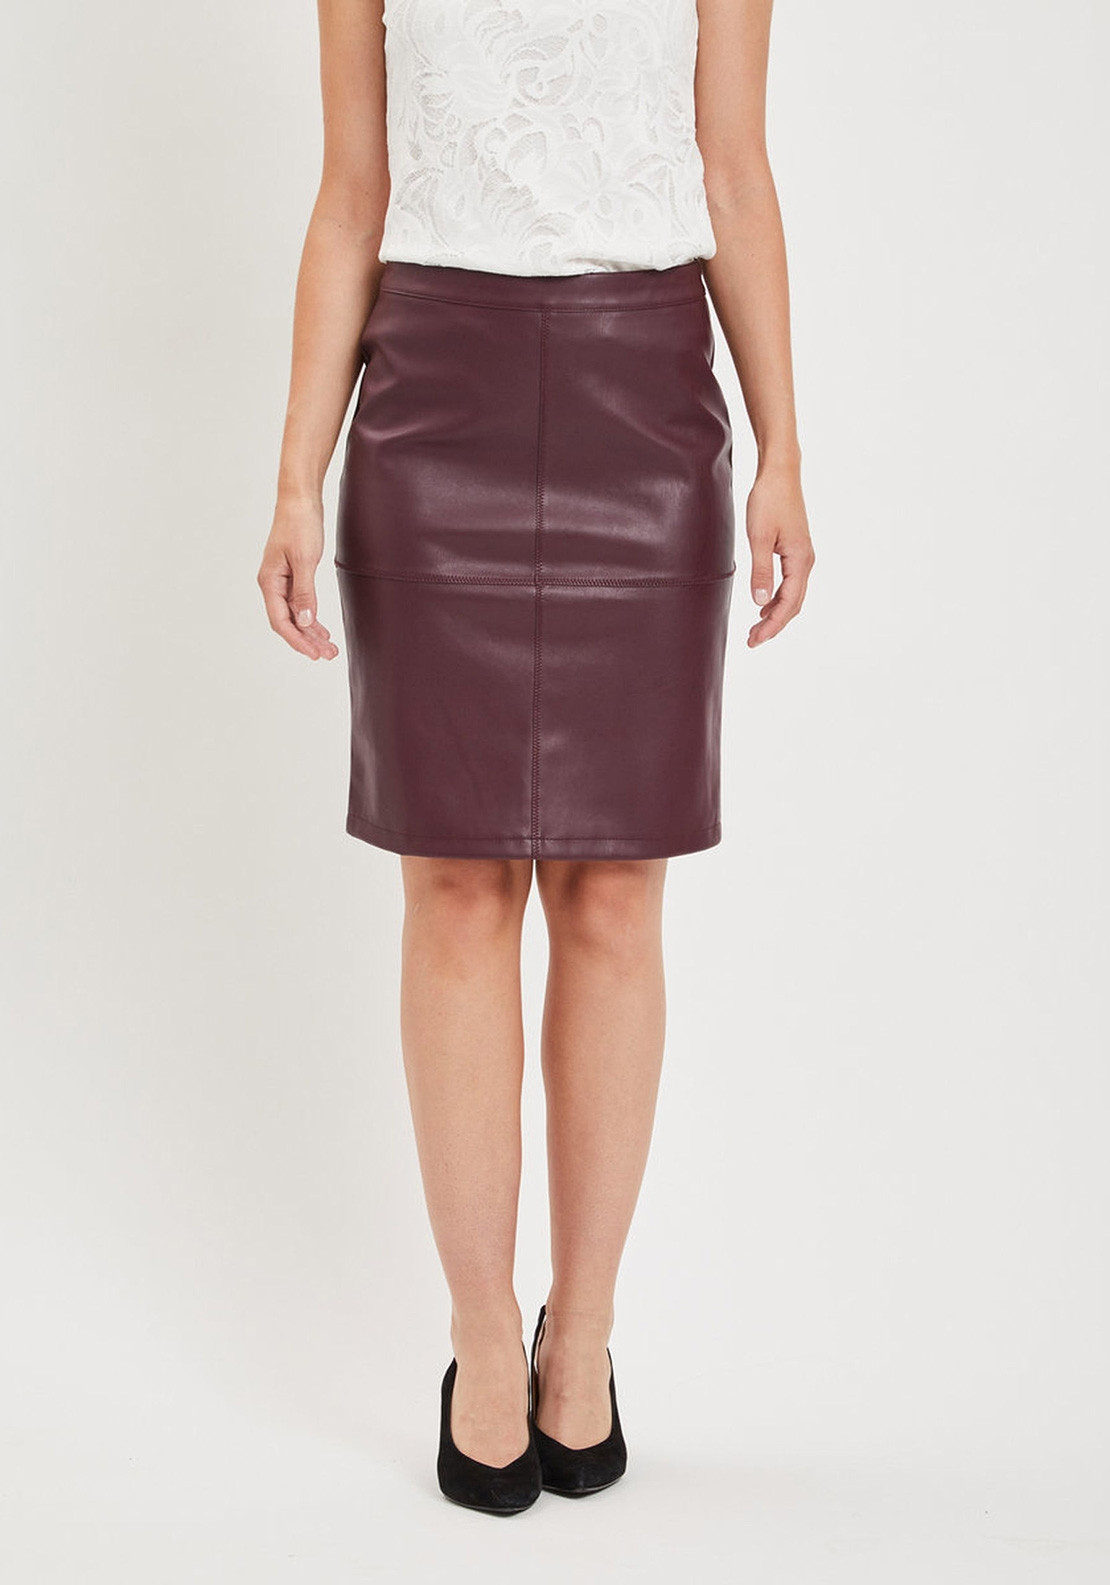 exclusive shoes beautiful style incredible prices Vila Pen New Faux Leather Pencil Skirt, Wine